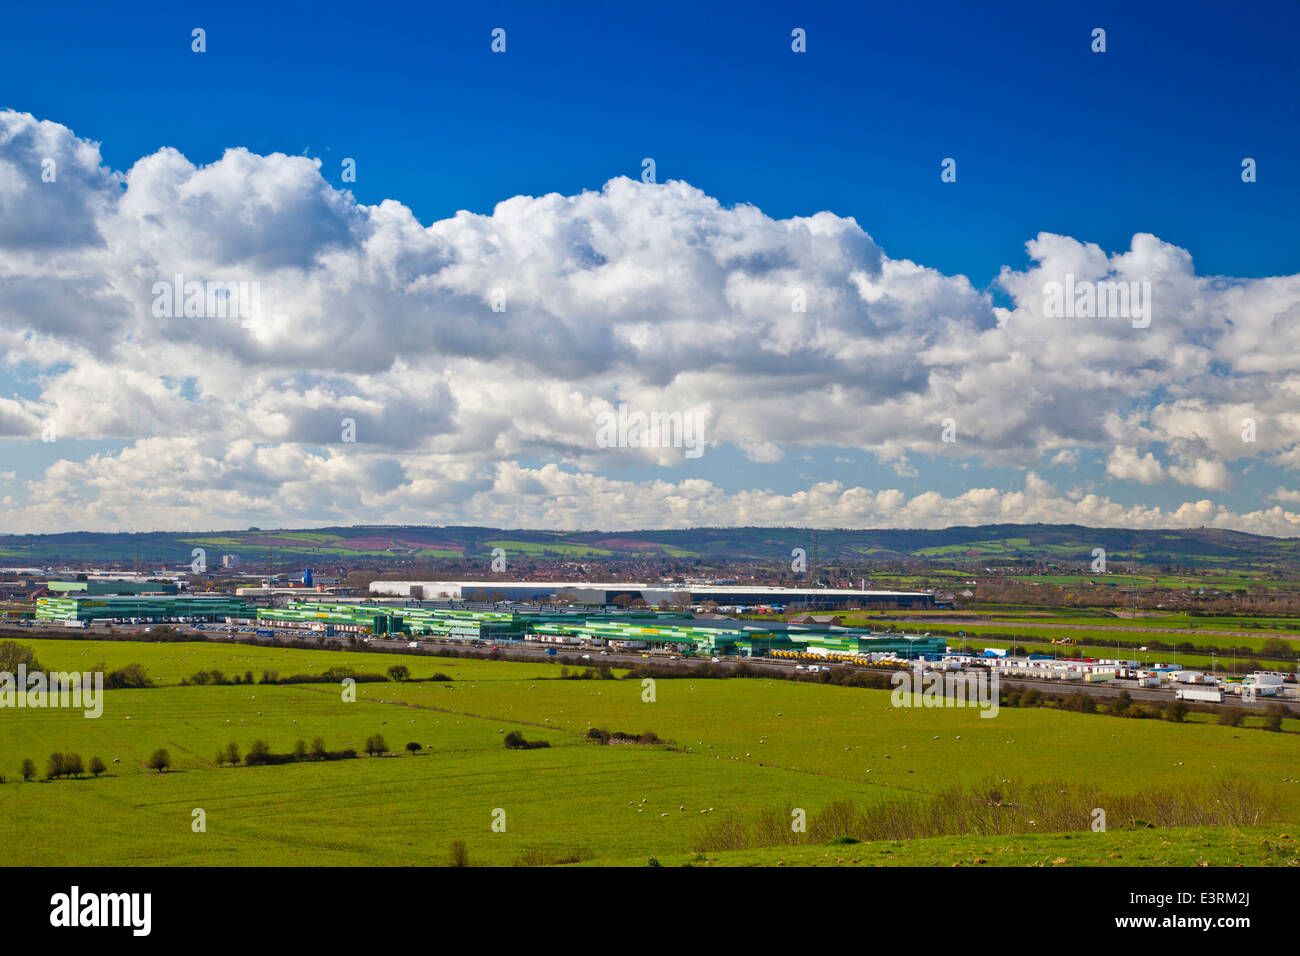 Morrison's distribution warehouse in Bridgwater, Somerset, England - camouflaged to make it blend in with its - Stock Image